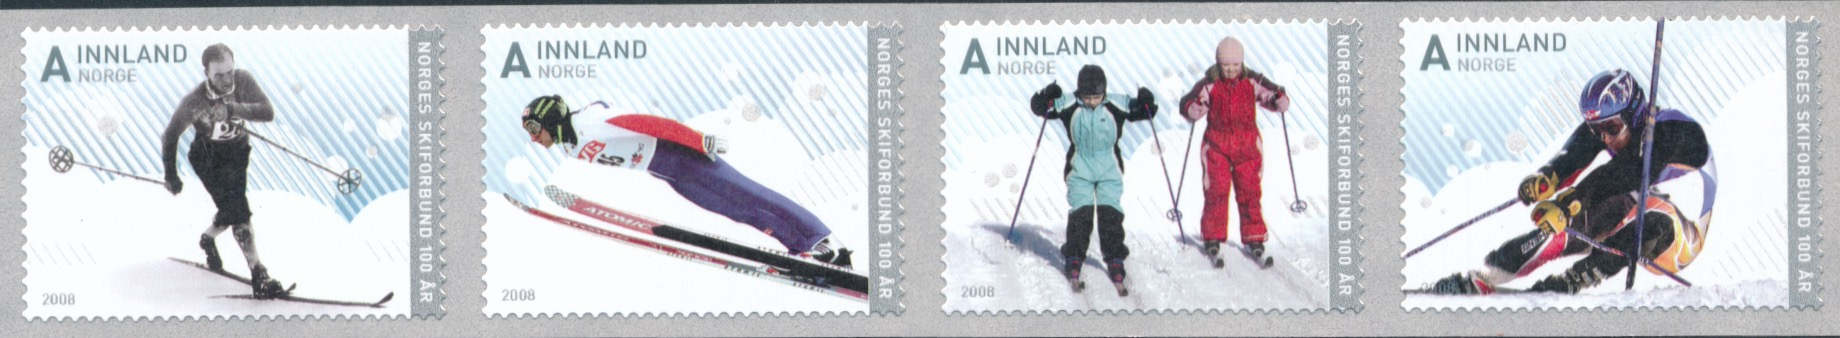 https://www.norstamps.com/content/images/stamps/norway/1675-78.jpeg